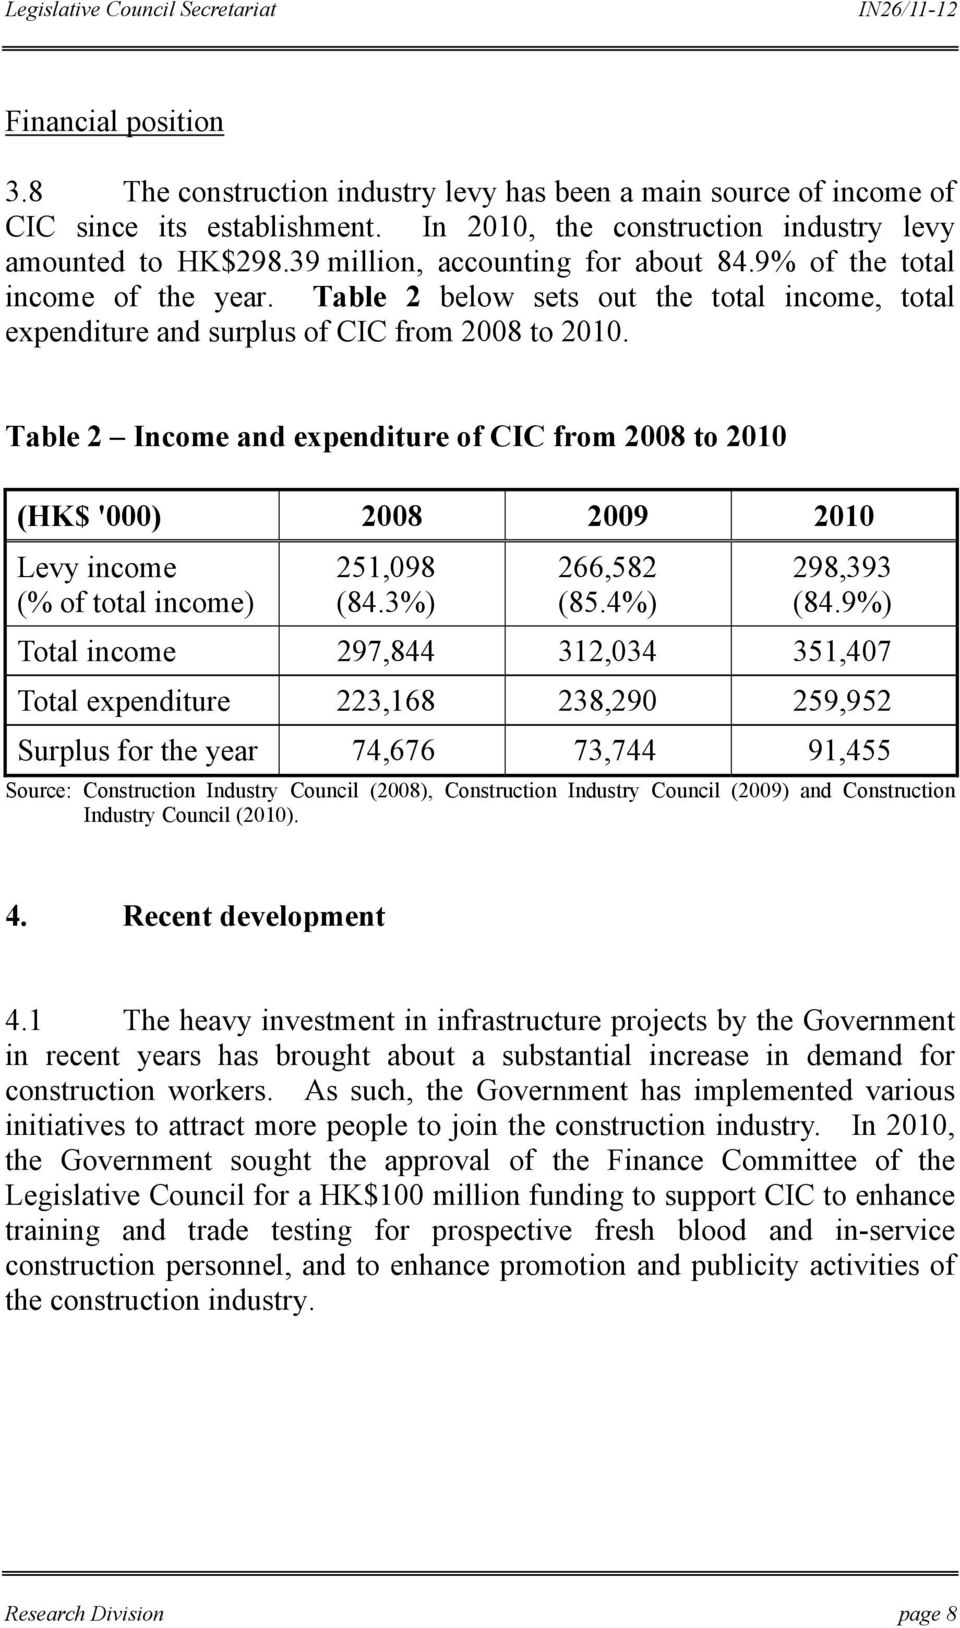 Table 2 Income and expenditure of CIC from 2008 to 2010 (HK$ '000) 2008 2009 2010 Levy income (% of total income) 251,098 (84.3%) 266,582 (85.4%) 298,393 (84.